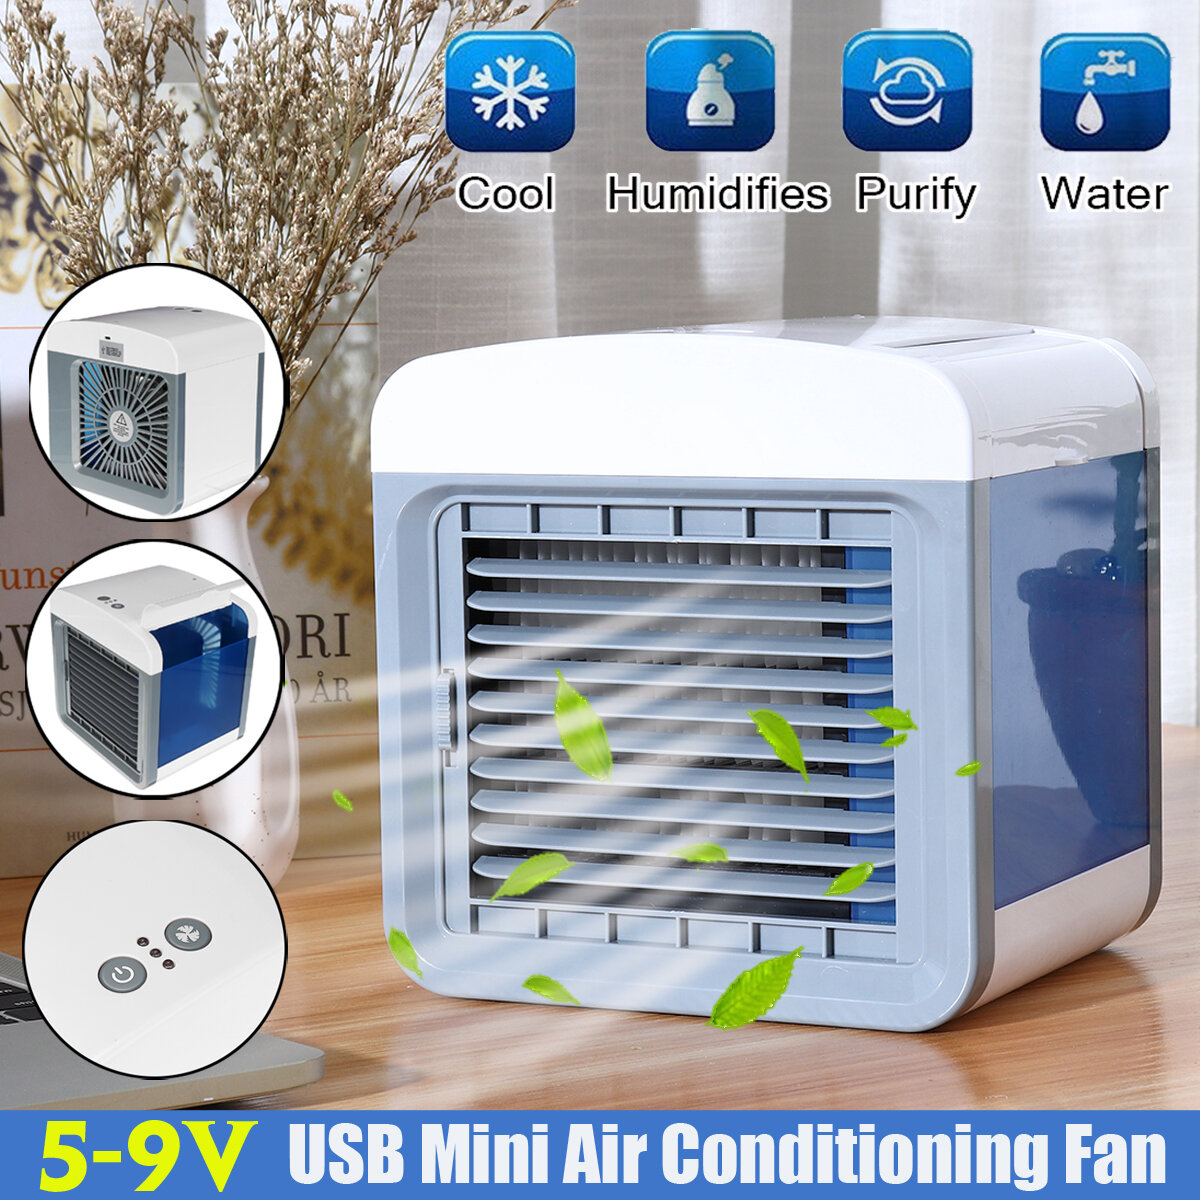 5-9V USB Mini Air Conditioning Fan Humidifier Home Cleaner Portable Fan